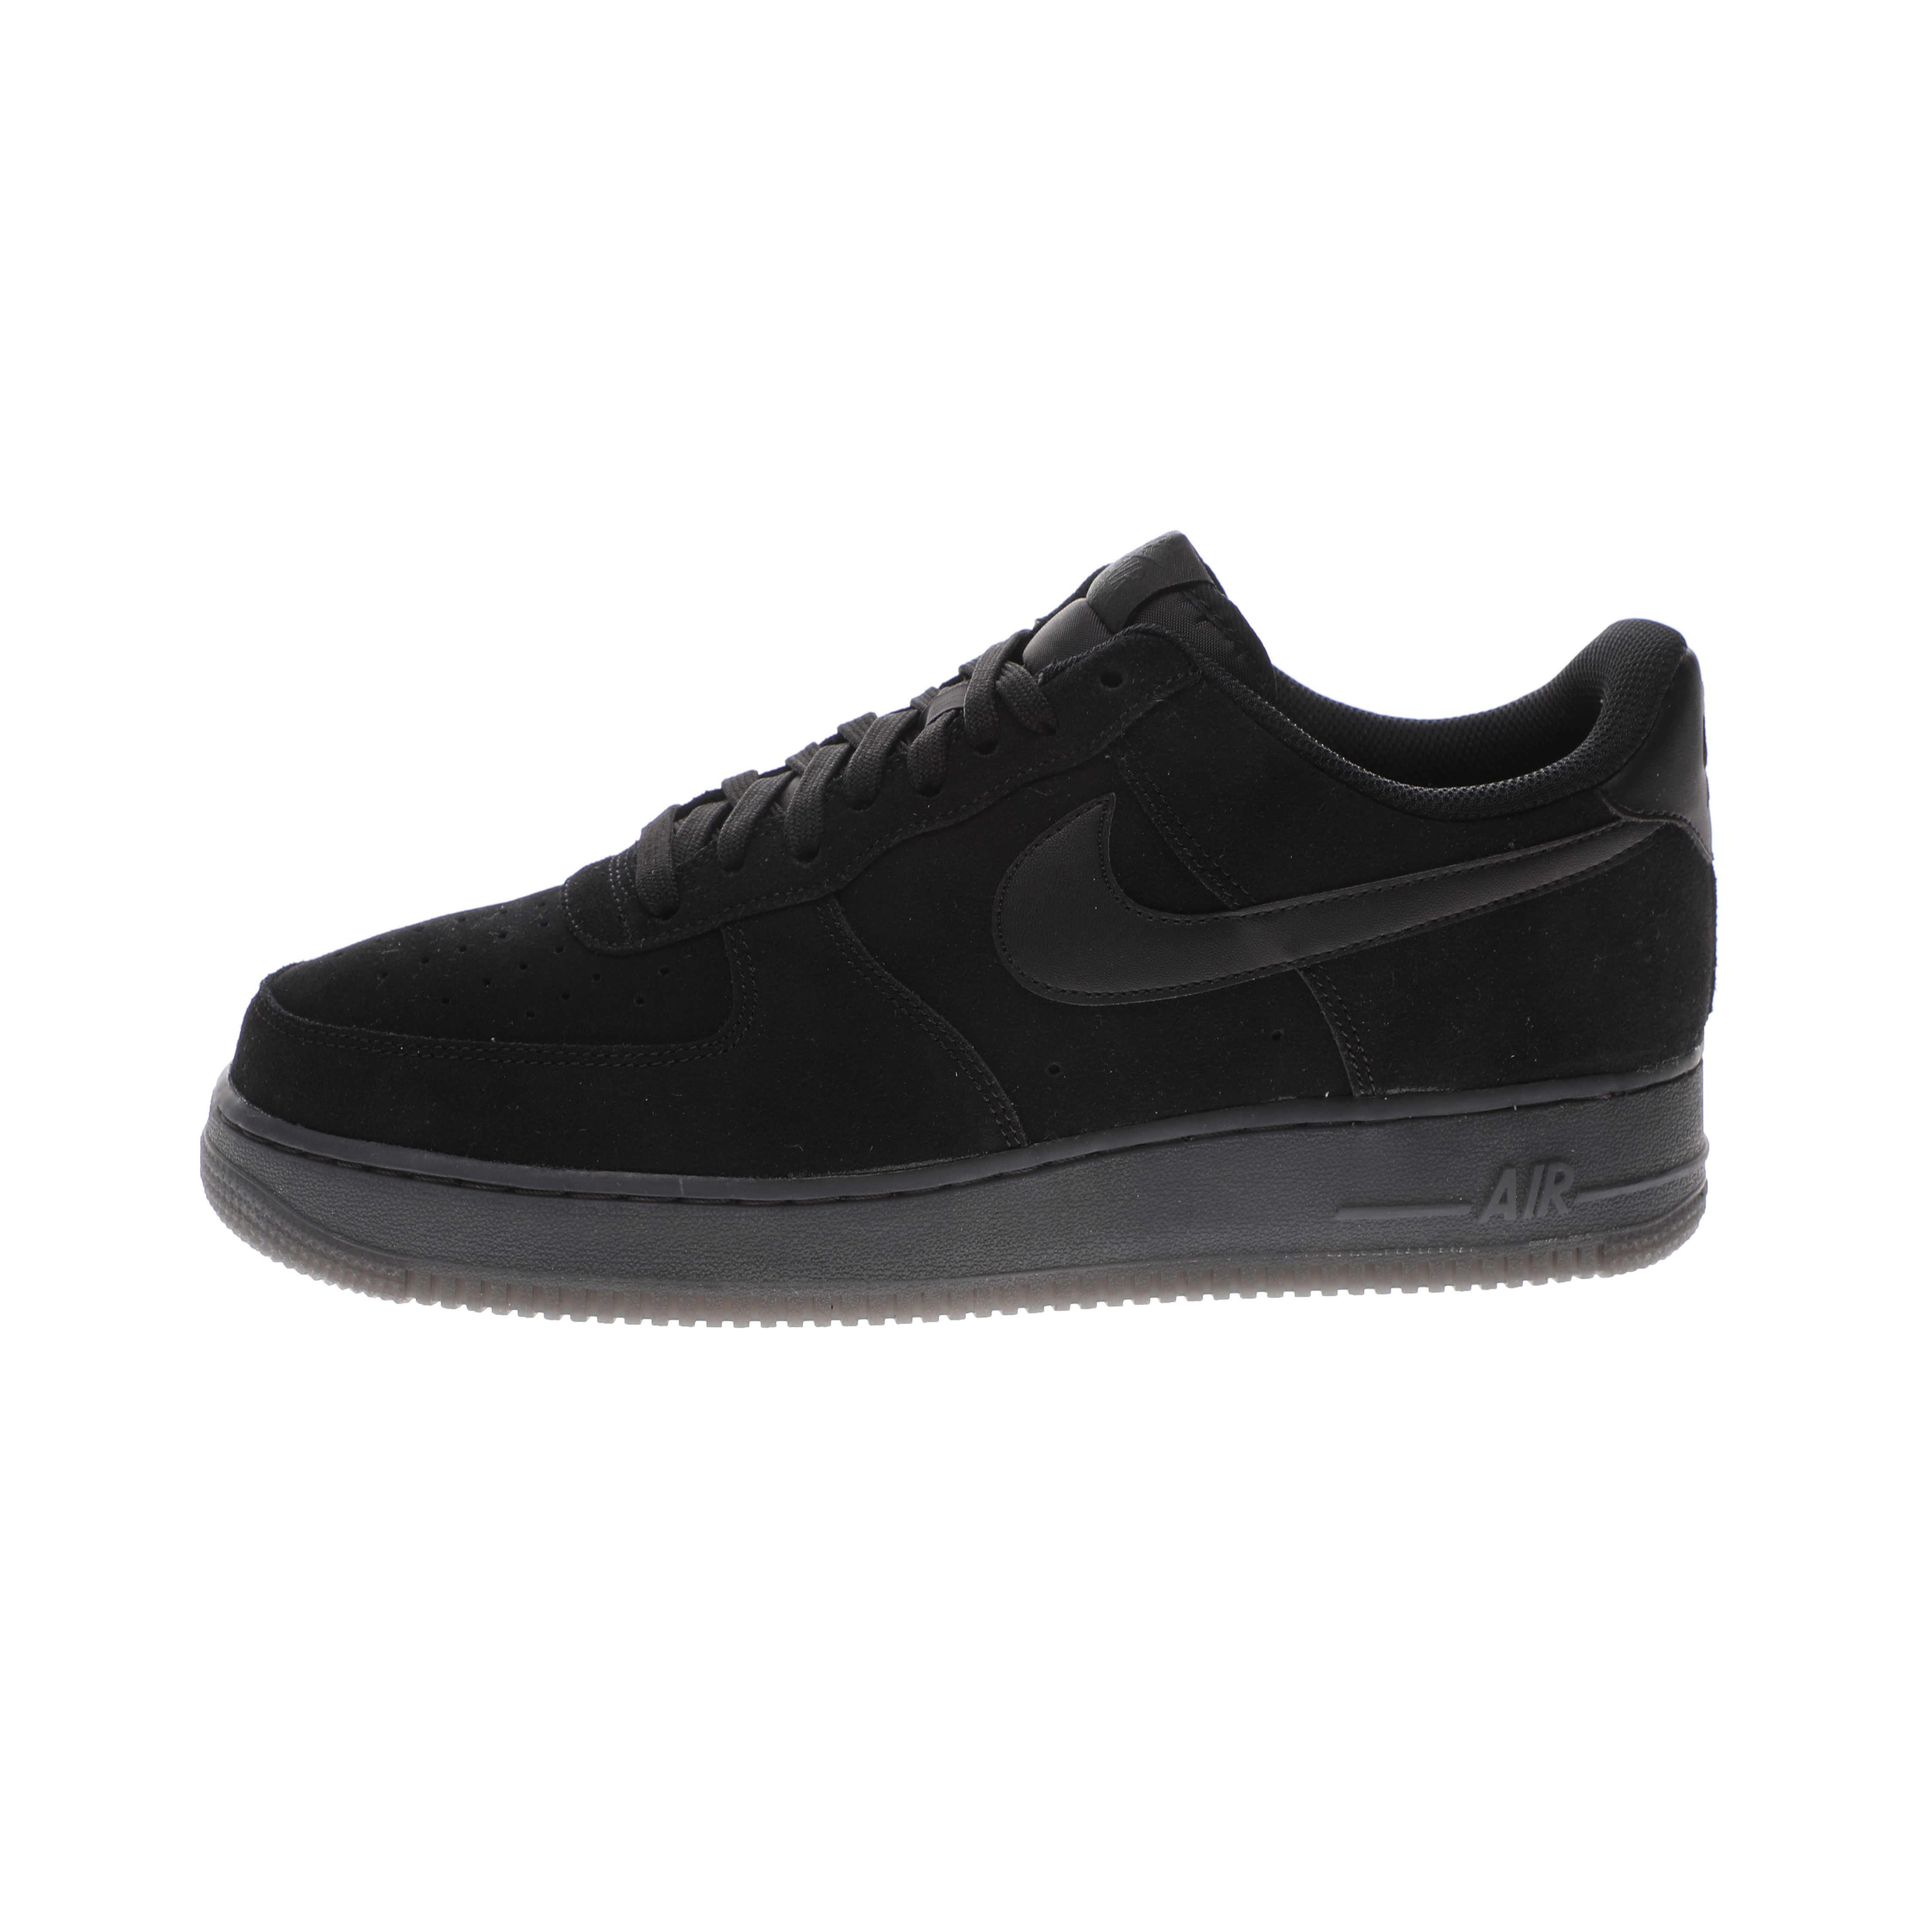 NIKE – Ανδρικά αθλητικά παπούτσια AIR FORCE 1 '07 LV8 3 μαύρα